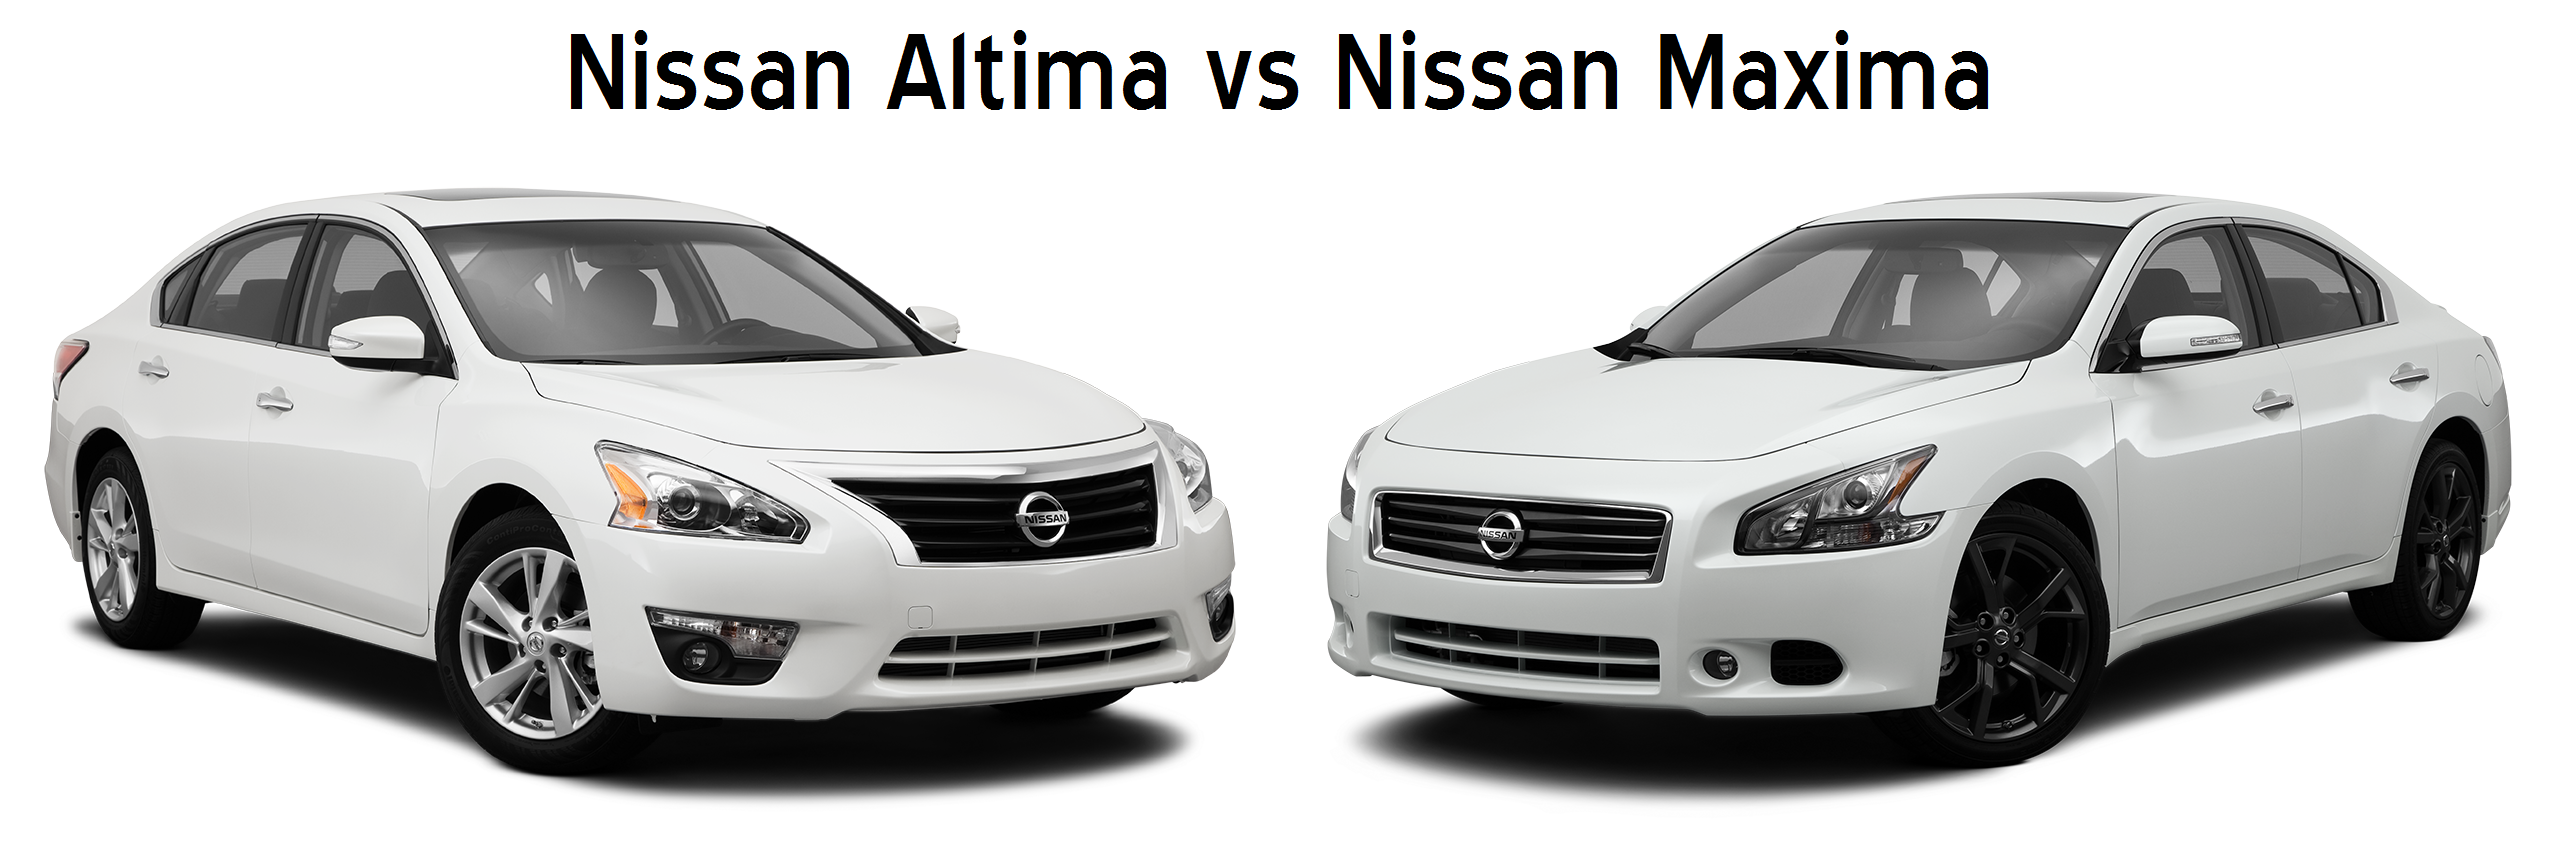 nissan altima vs maxima comparison. Black Bedroom Furniture Sets. Home Design Ideas